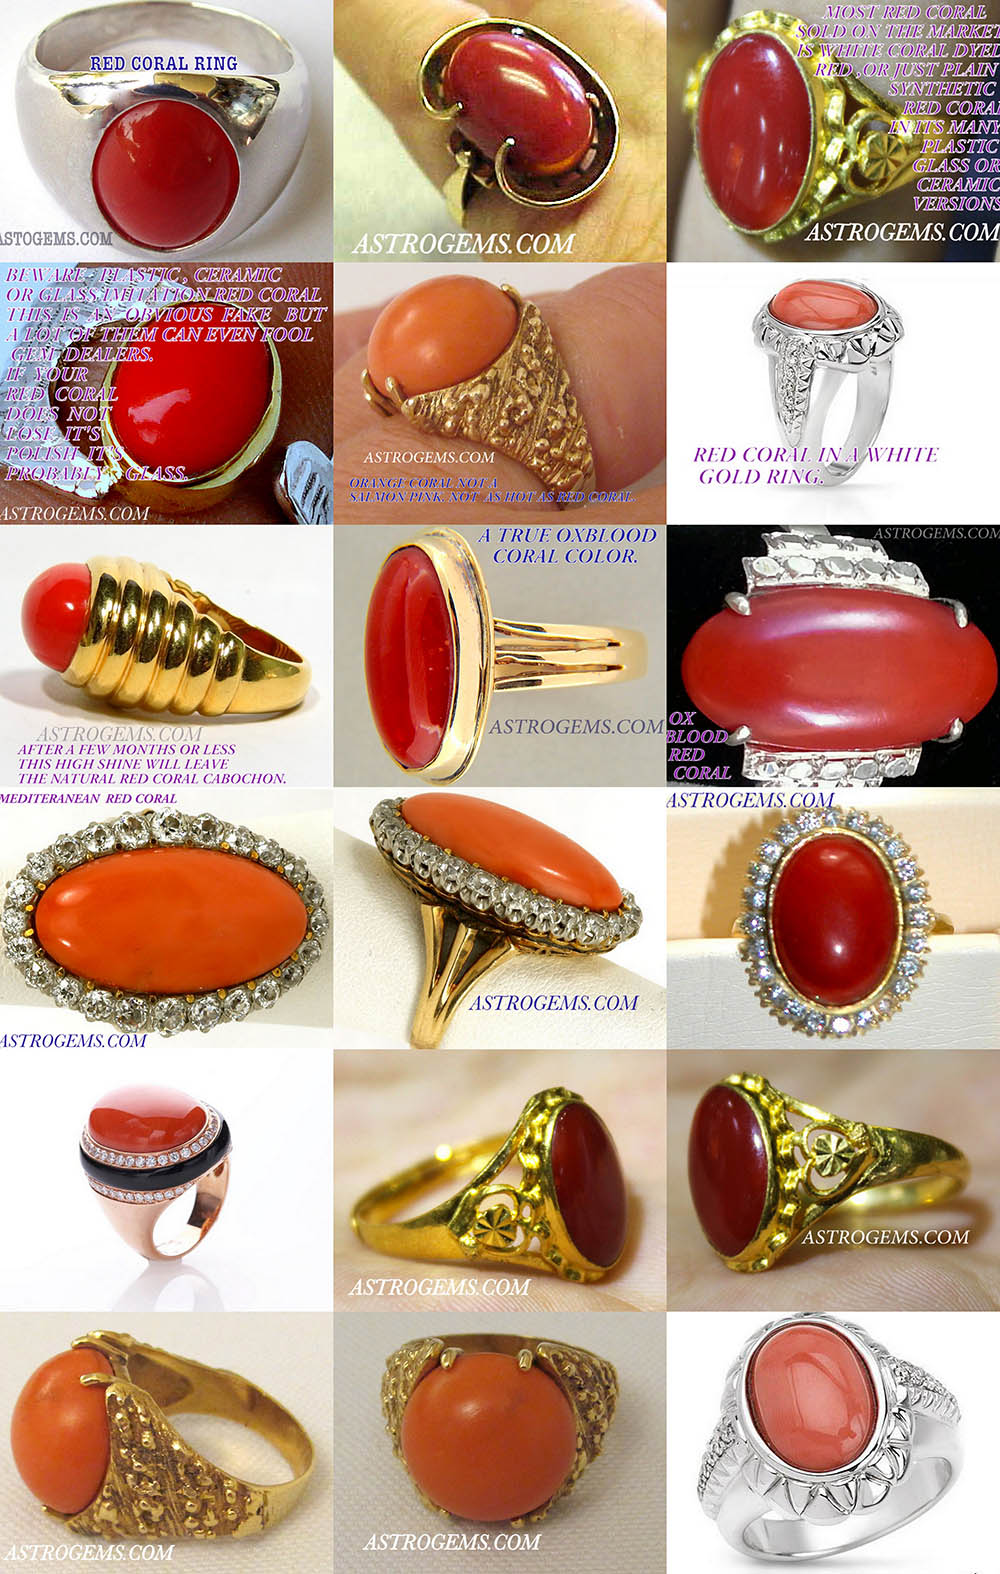 red coral ayurvedic astrological rings